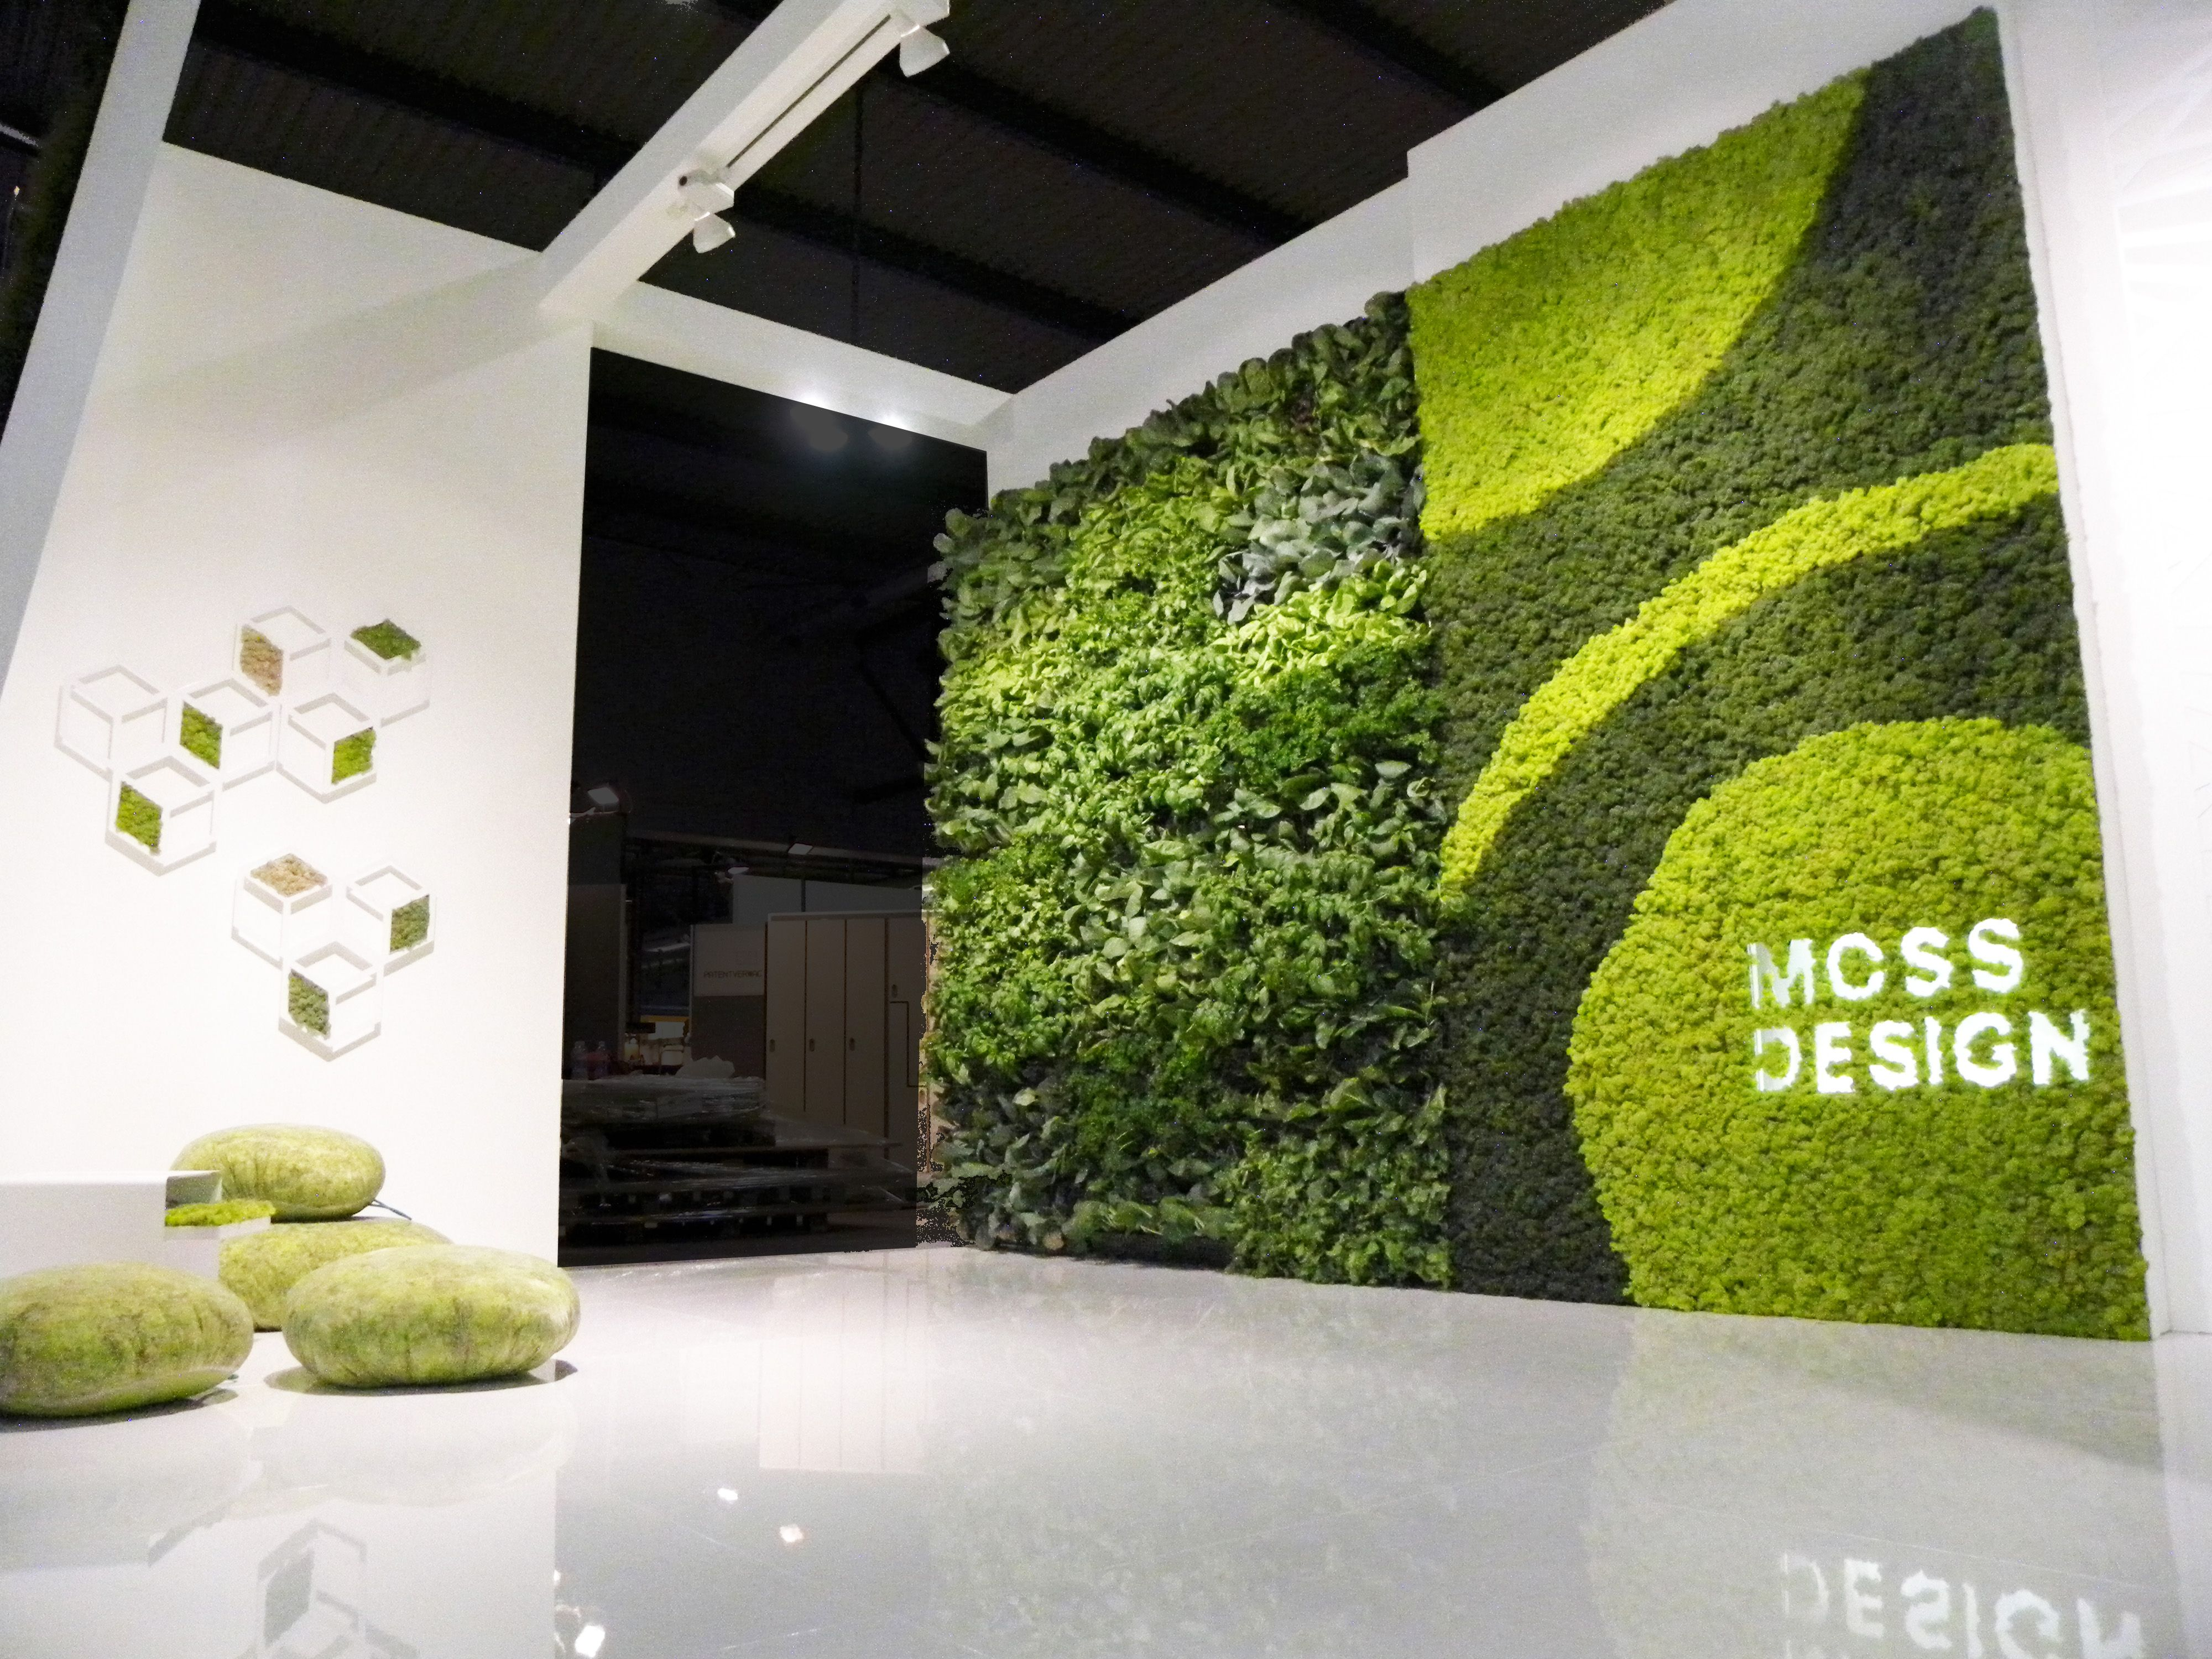 Moss wall projects made expo 2011 milano italy www for Garden designer milano